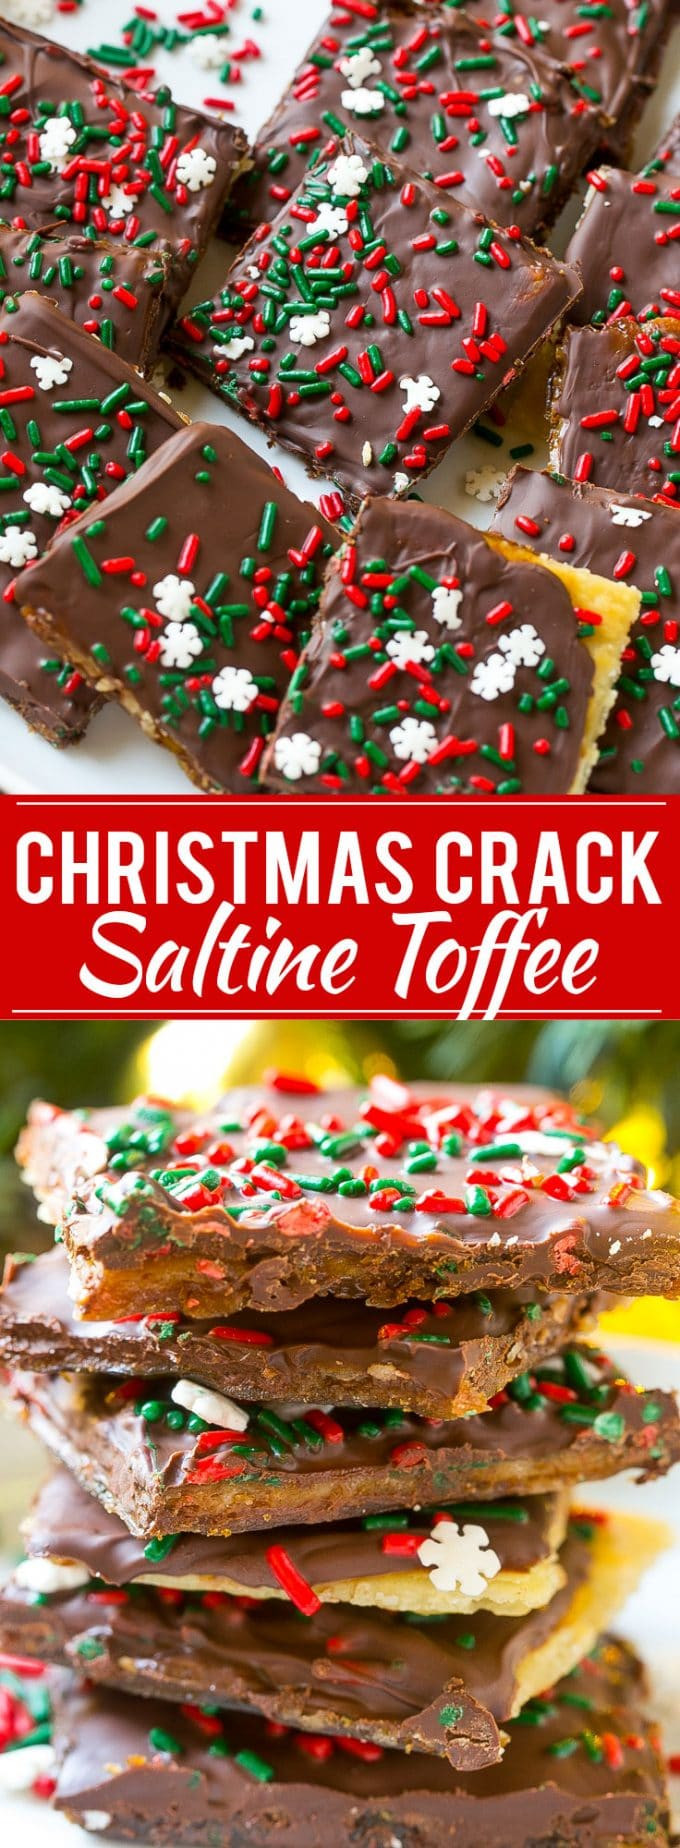 Christmas Crack Candy Recipe  Christmas Crack Saltine Toffee Dinner at the Zoo